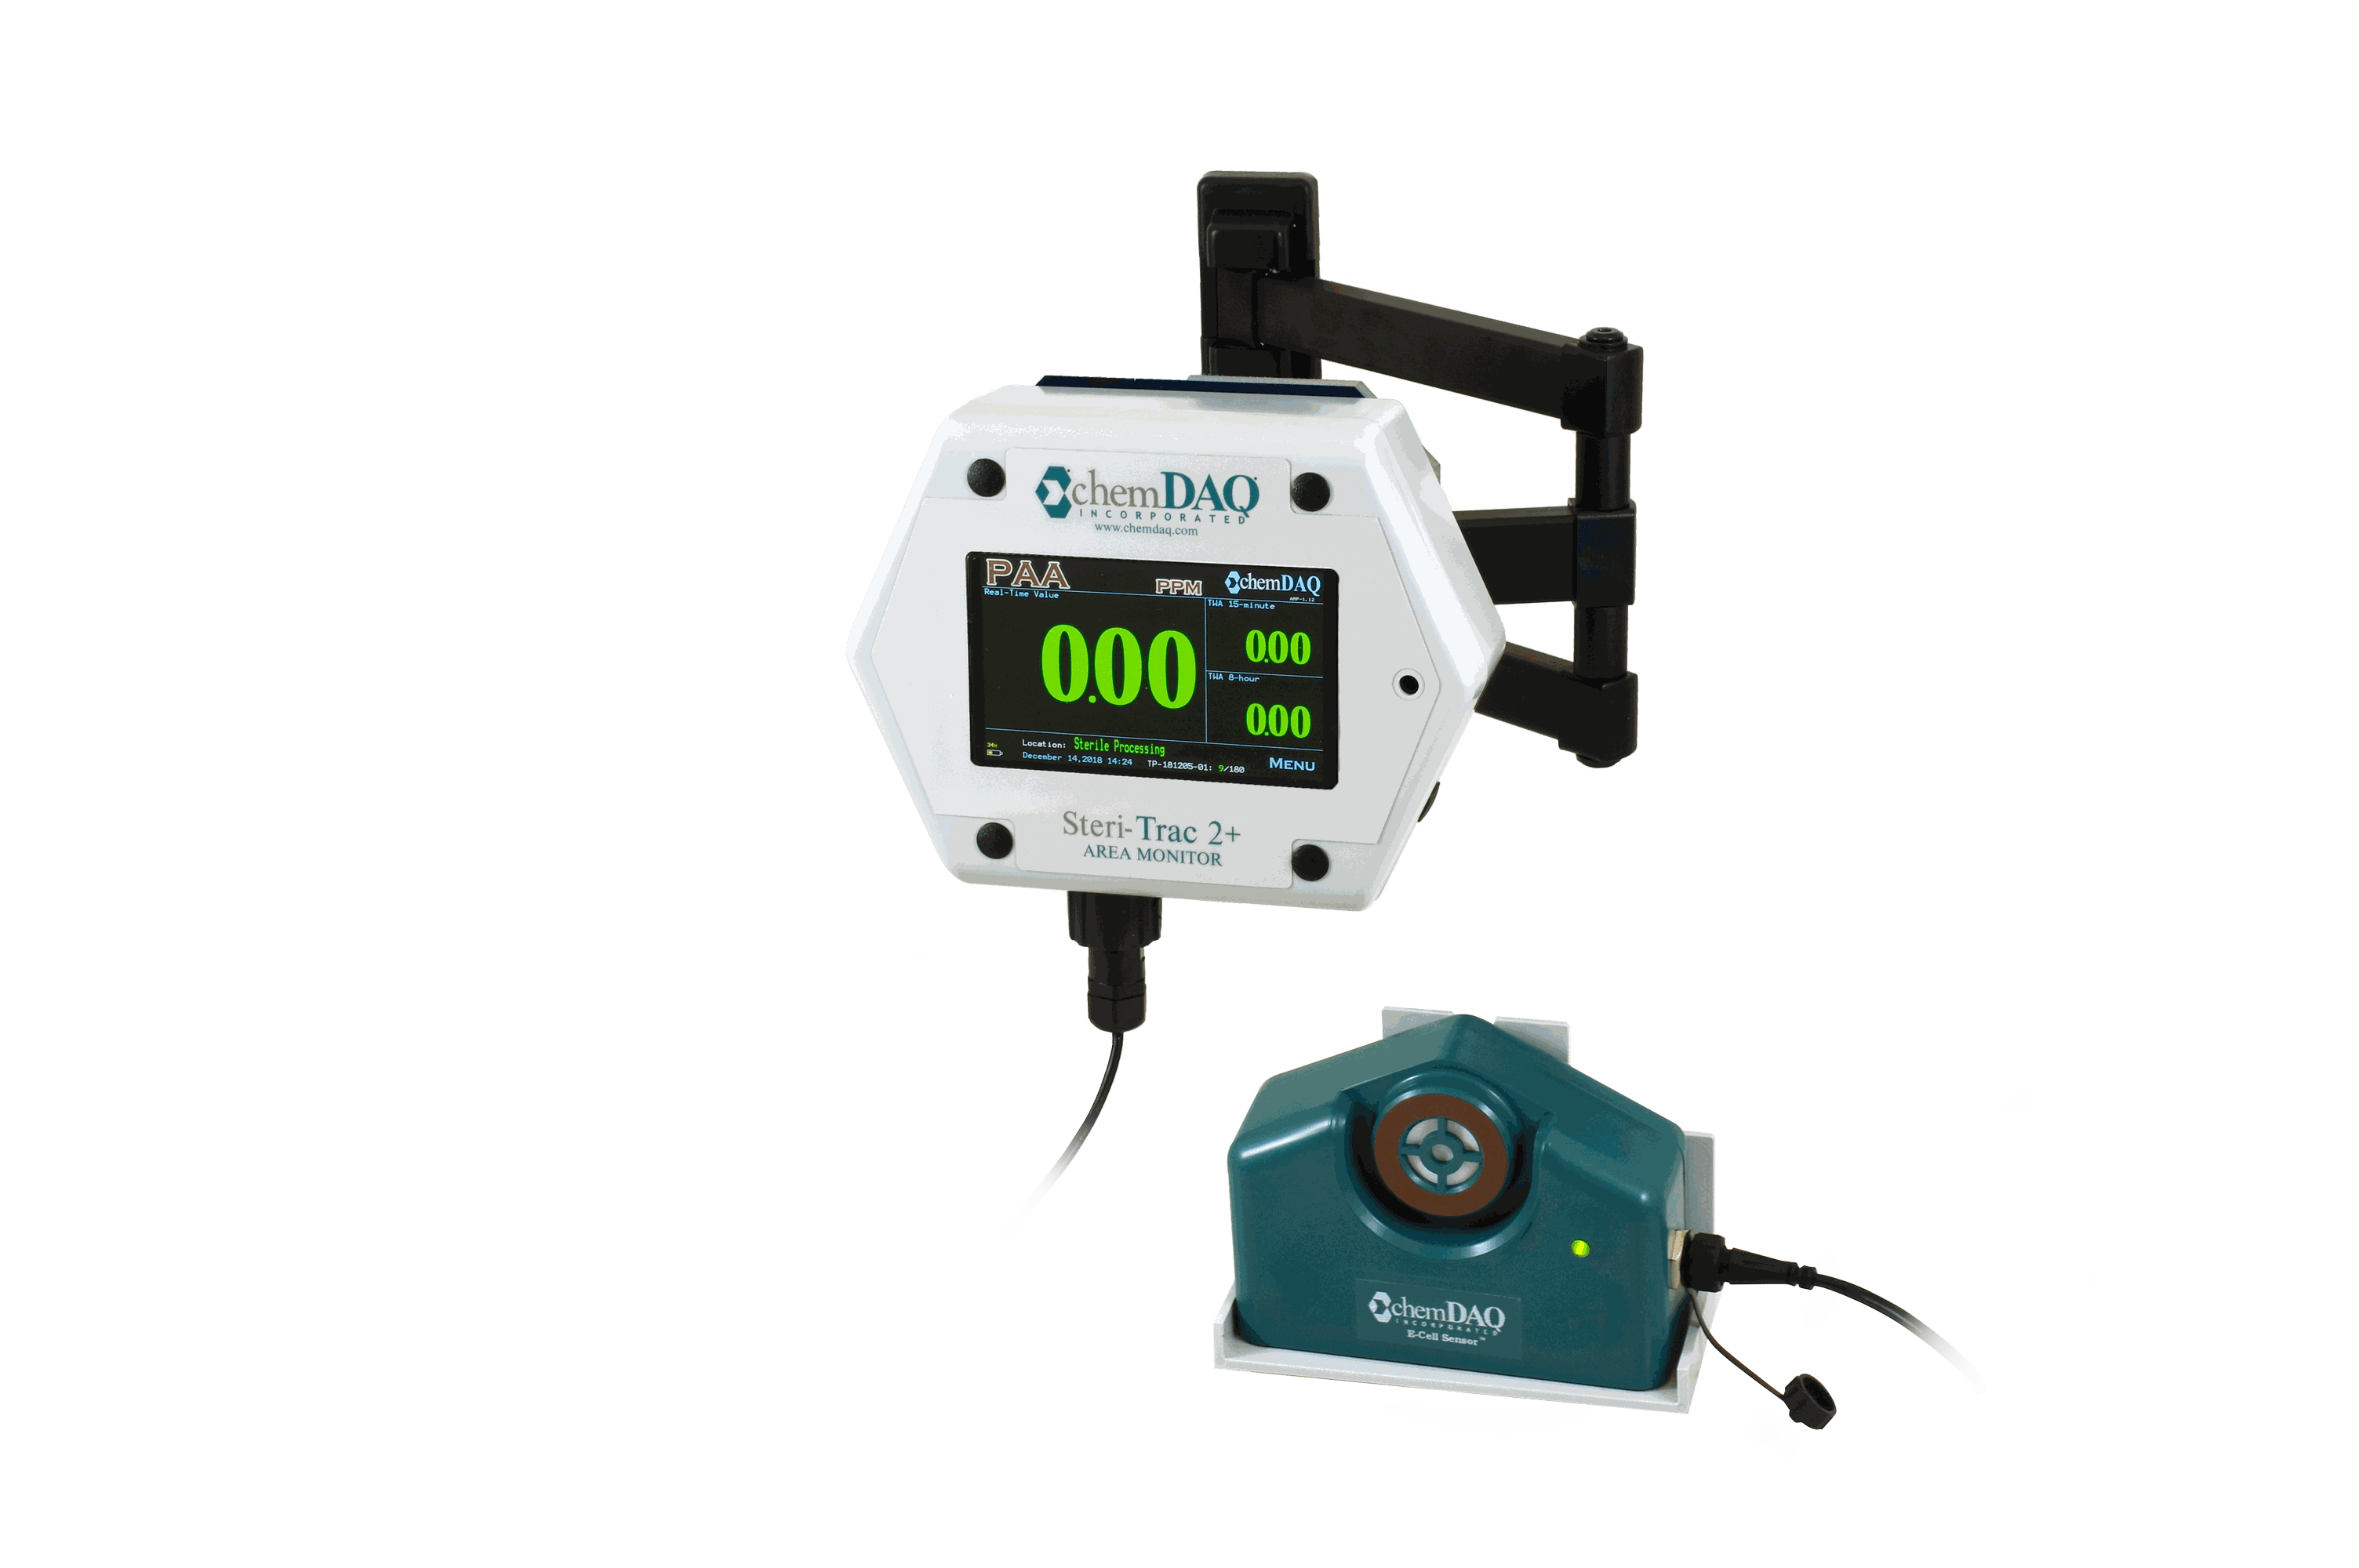 ChemDAQ's fixed air monitor provides real time readings of peracetic acid, ethylene oxide and hydrogen peroxide in the work environment.